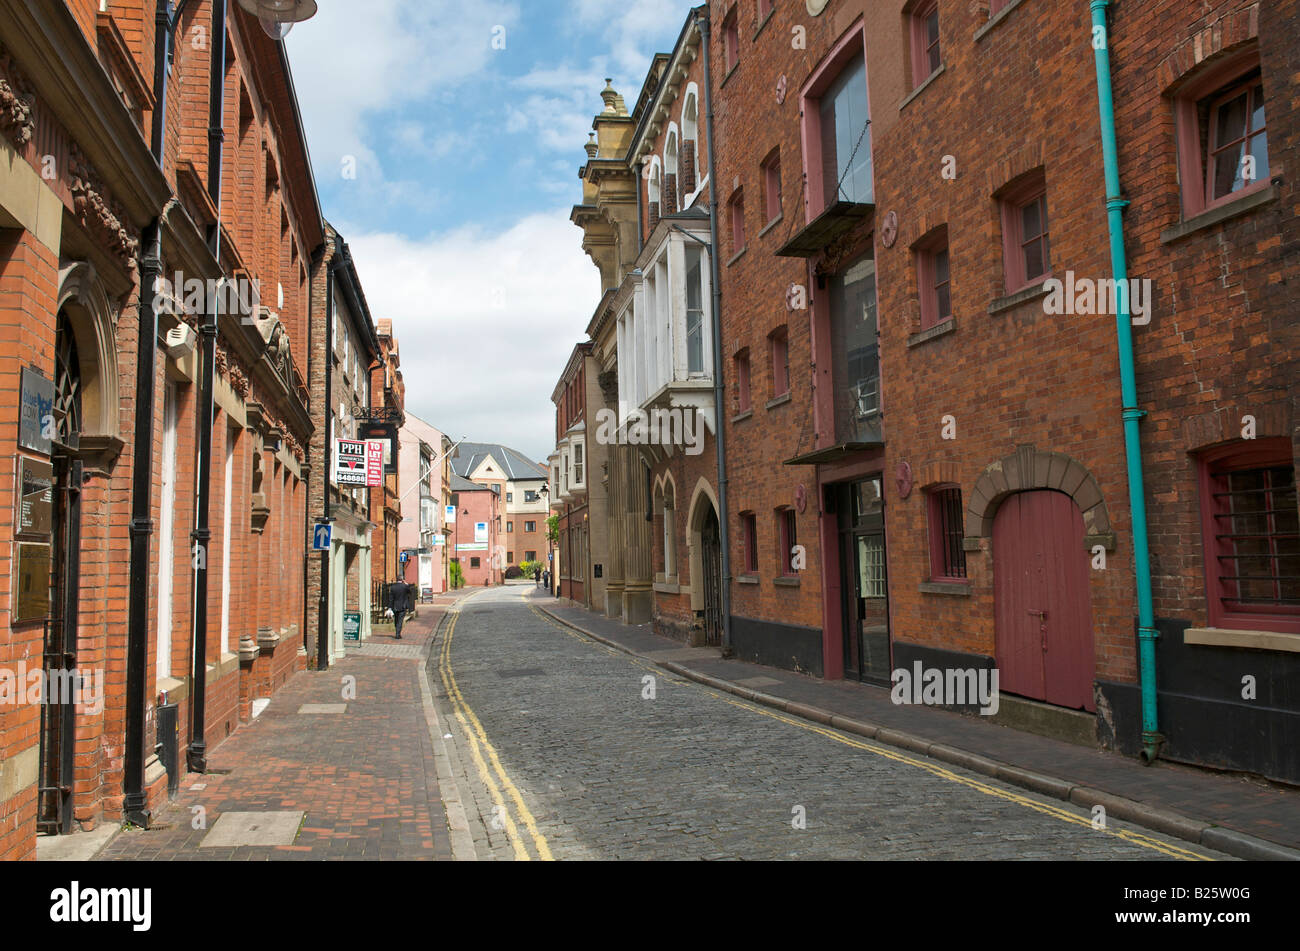 High Street Kingston upon Hull East Yorkshire - Stock Image